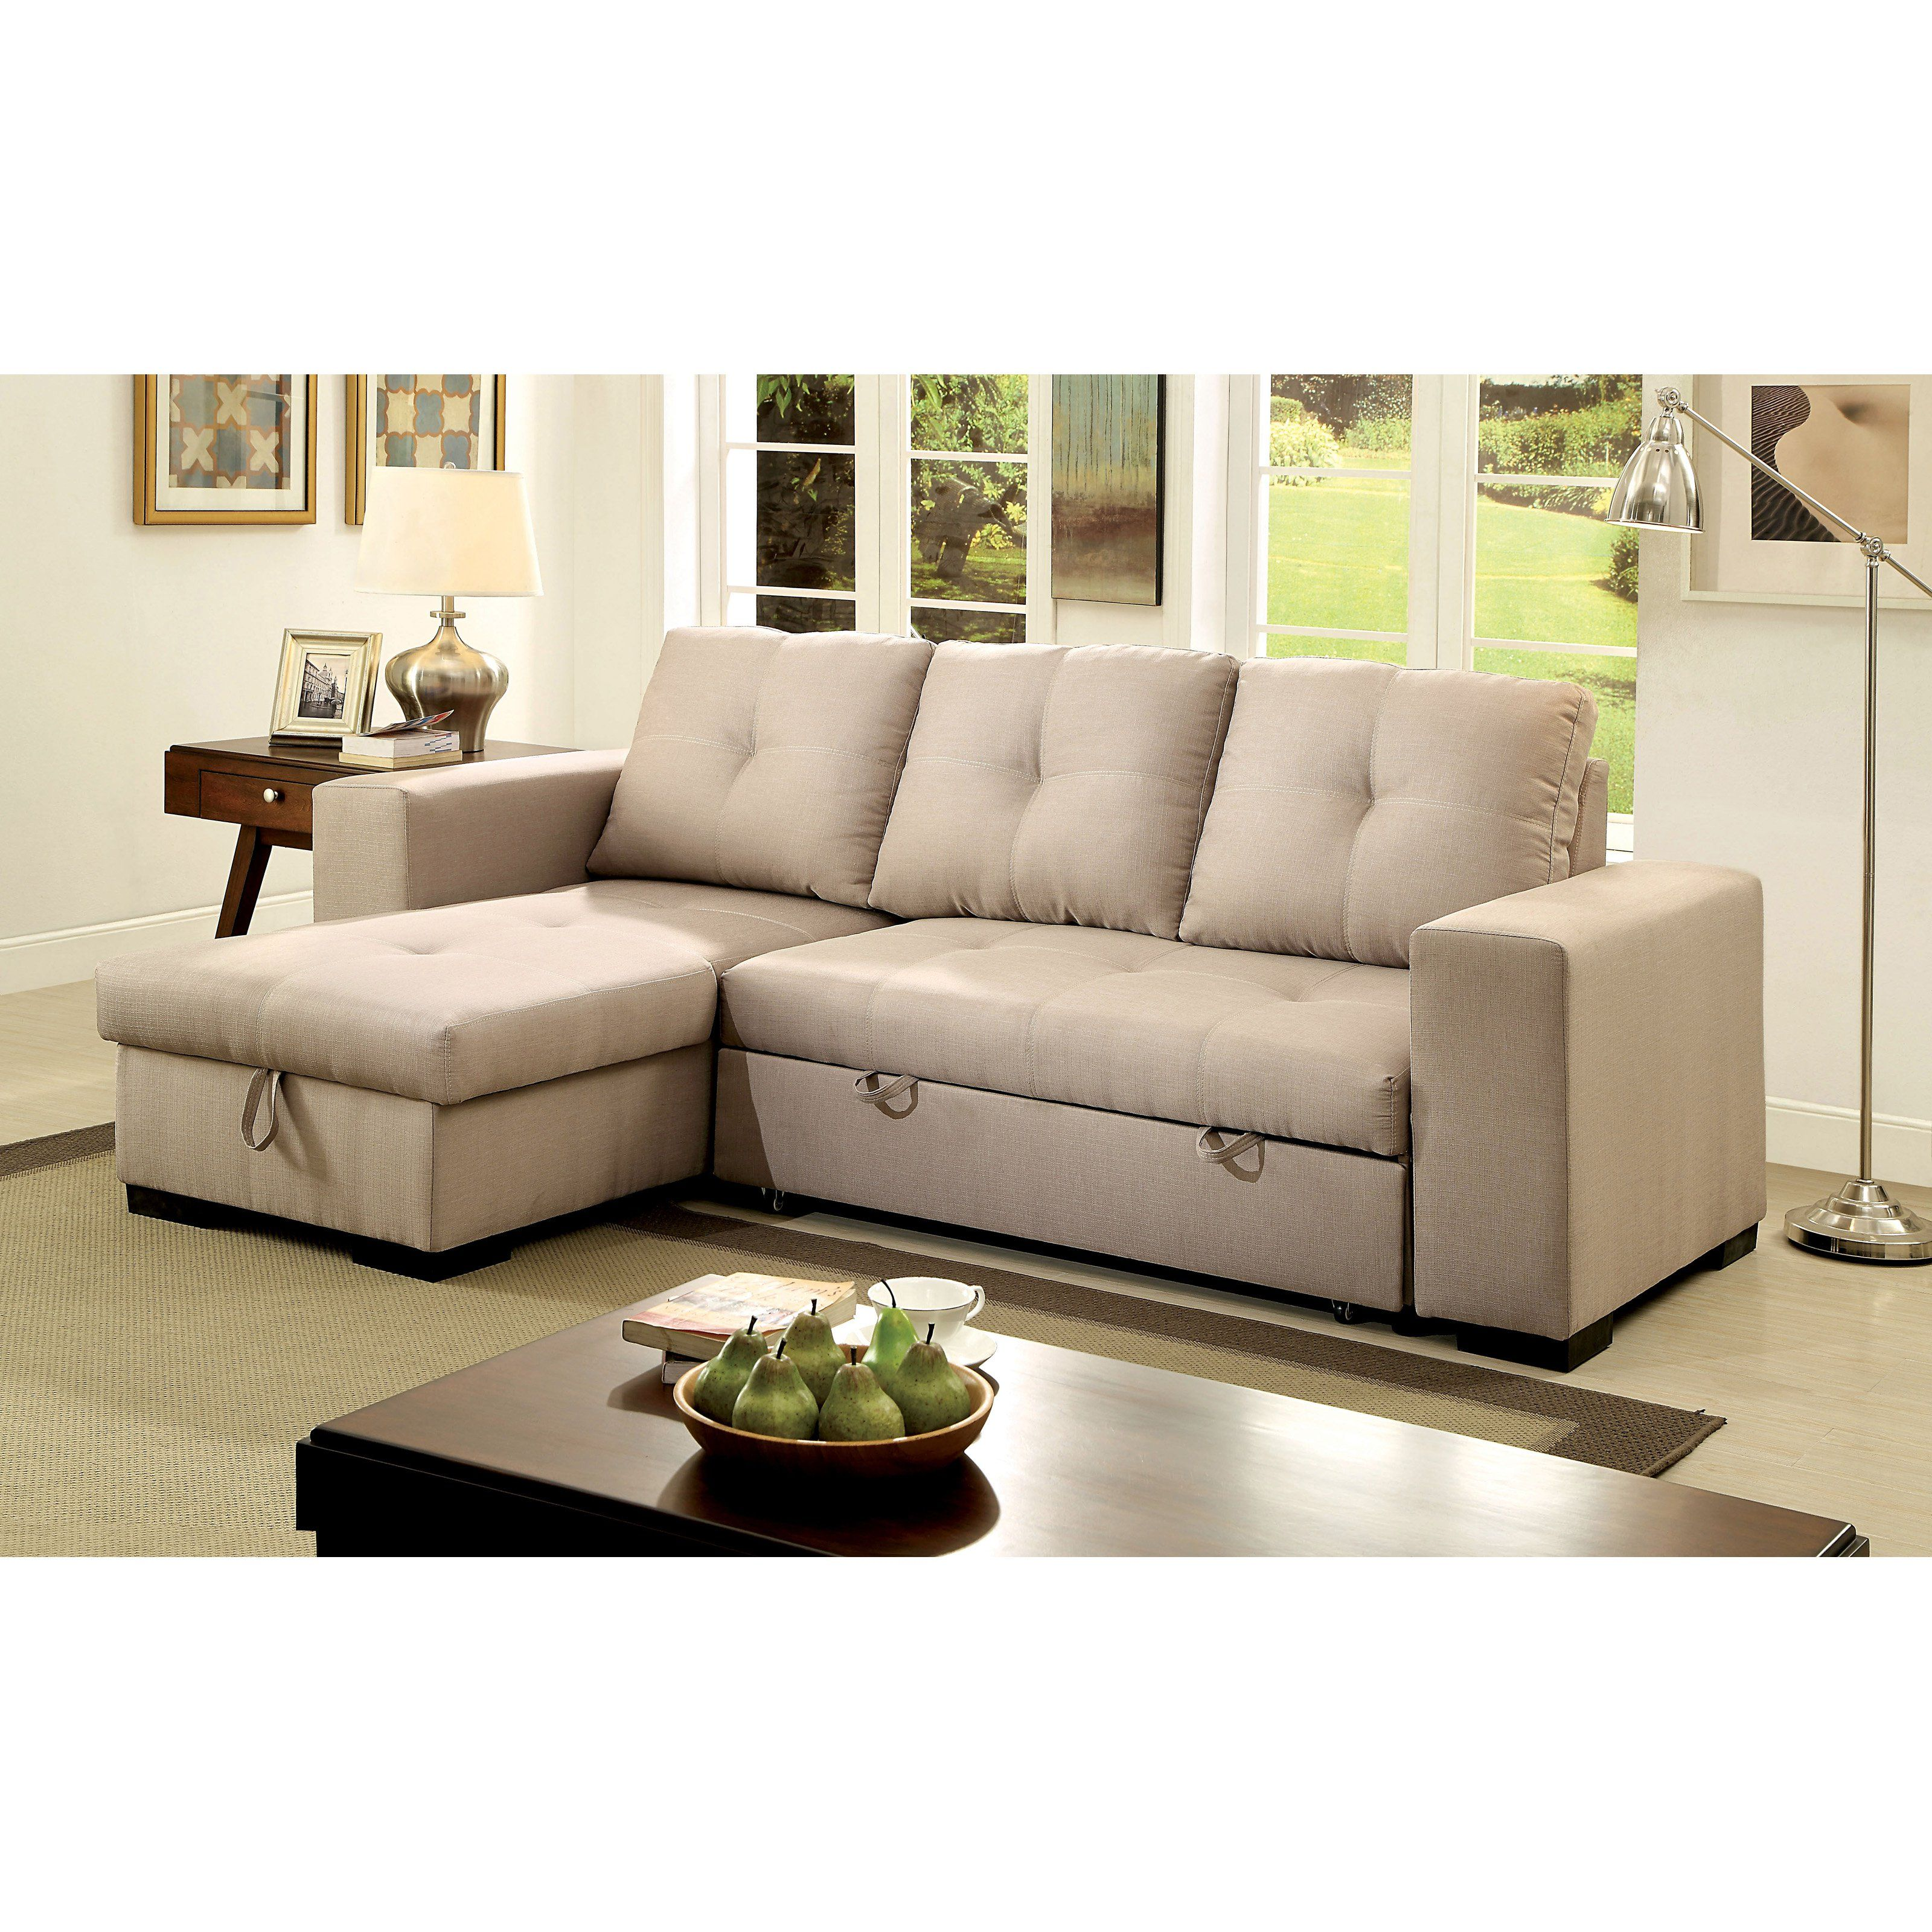 Furniture of America Rhea Sectional Sofa with Pull Out ...